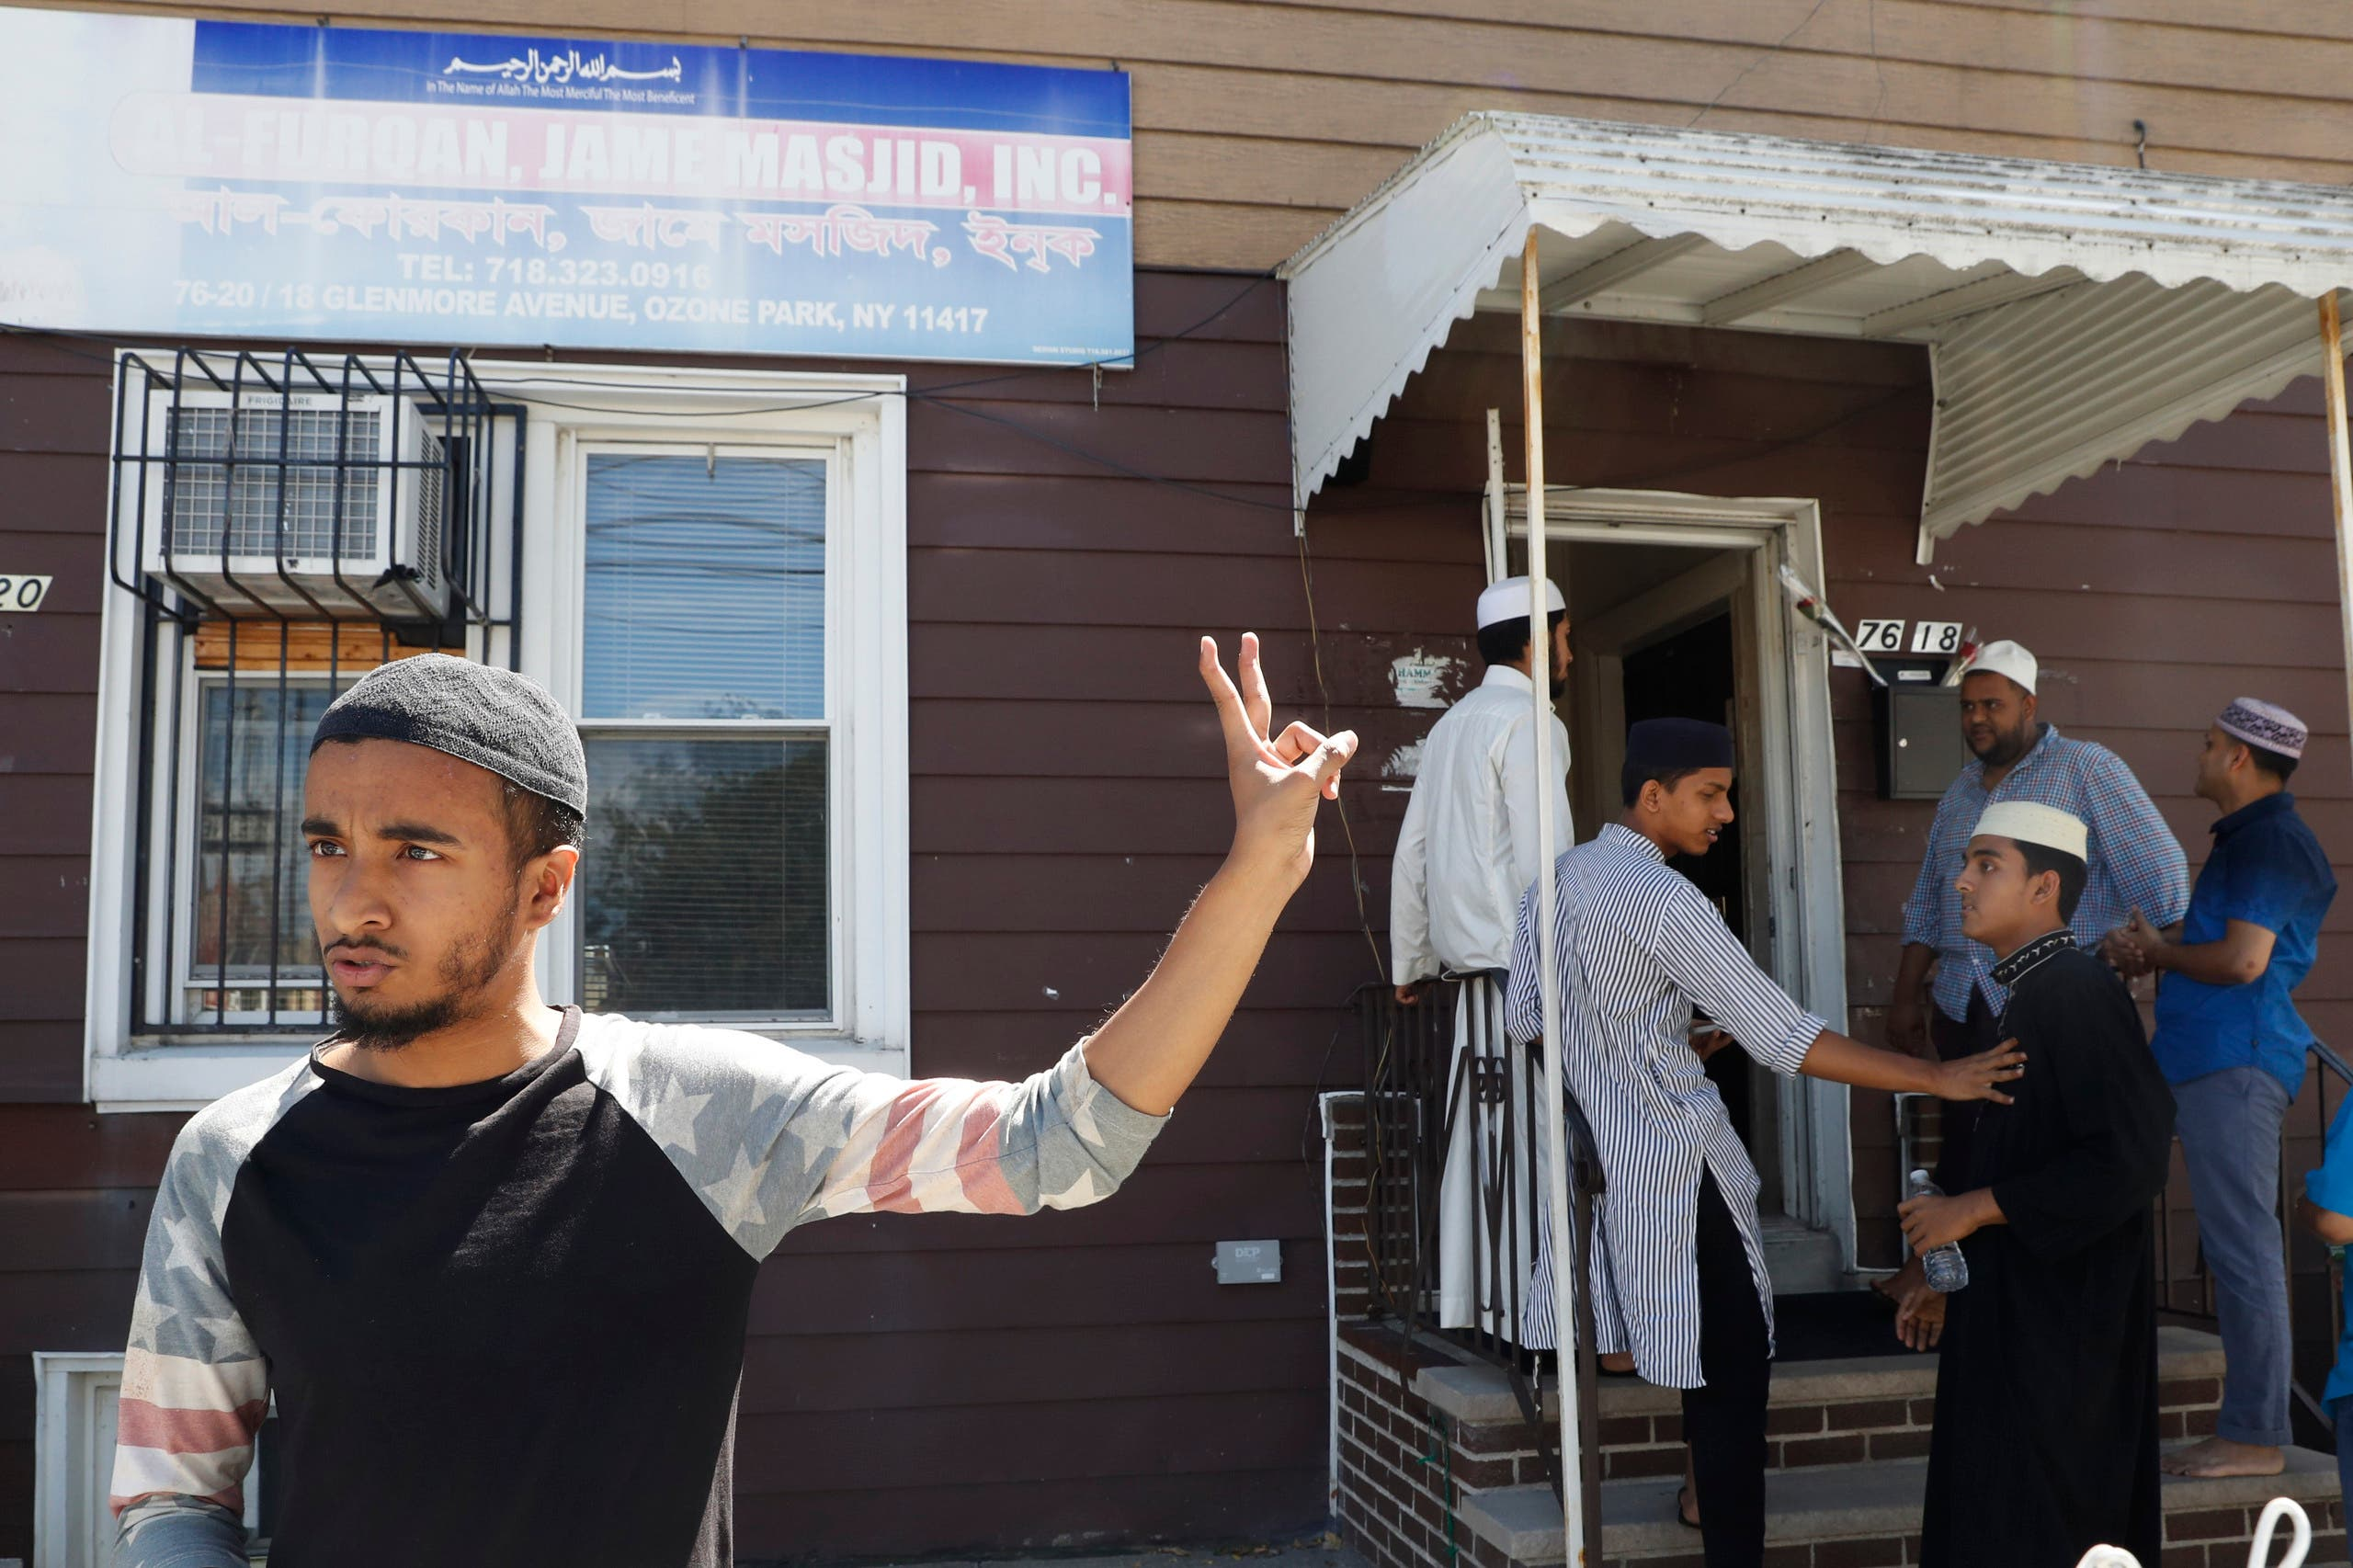 In this Wednesday, Aug. 17, 2016, photo Ashik Uddin gestures as he speaks during an interview with The Associated Press outside the Al-Furqan Jame mosque in the Ozone Park neighborhood of the Queens borough of New York. The shooting of an imam and his assistant near their New York mosque has unnerved Muslim residents of the Ozone Park section of Queens. (AP)